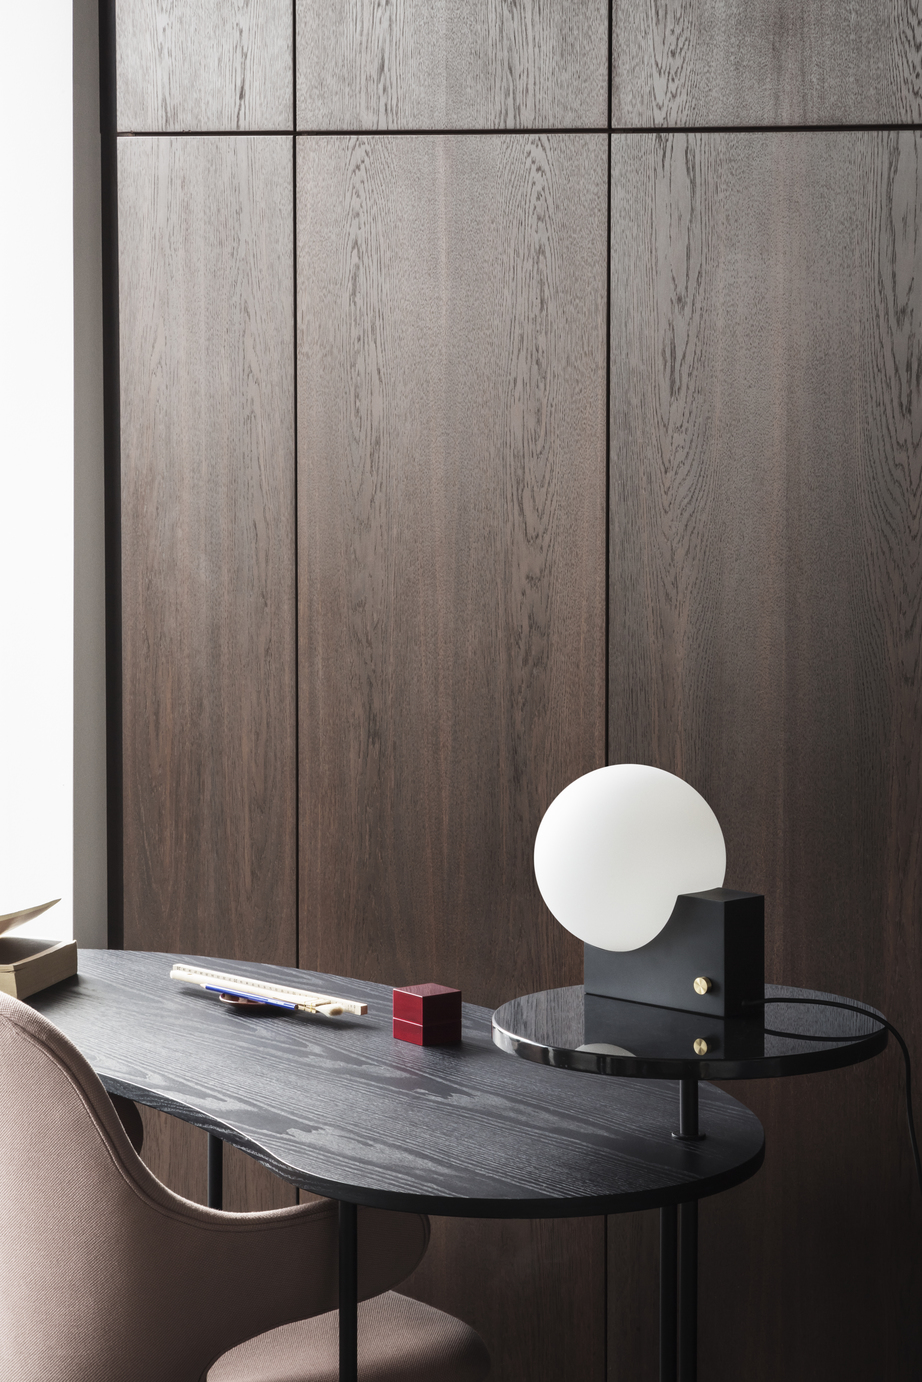 ATD_Location_2018_Palette JH9_Journey SHY1_Catch JH15_5